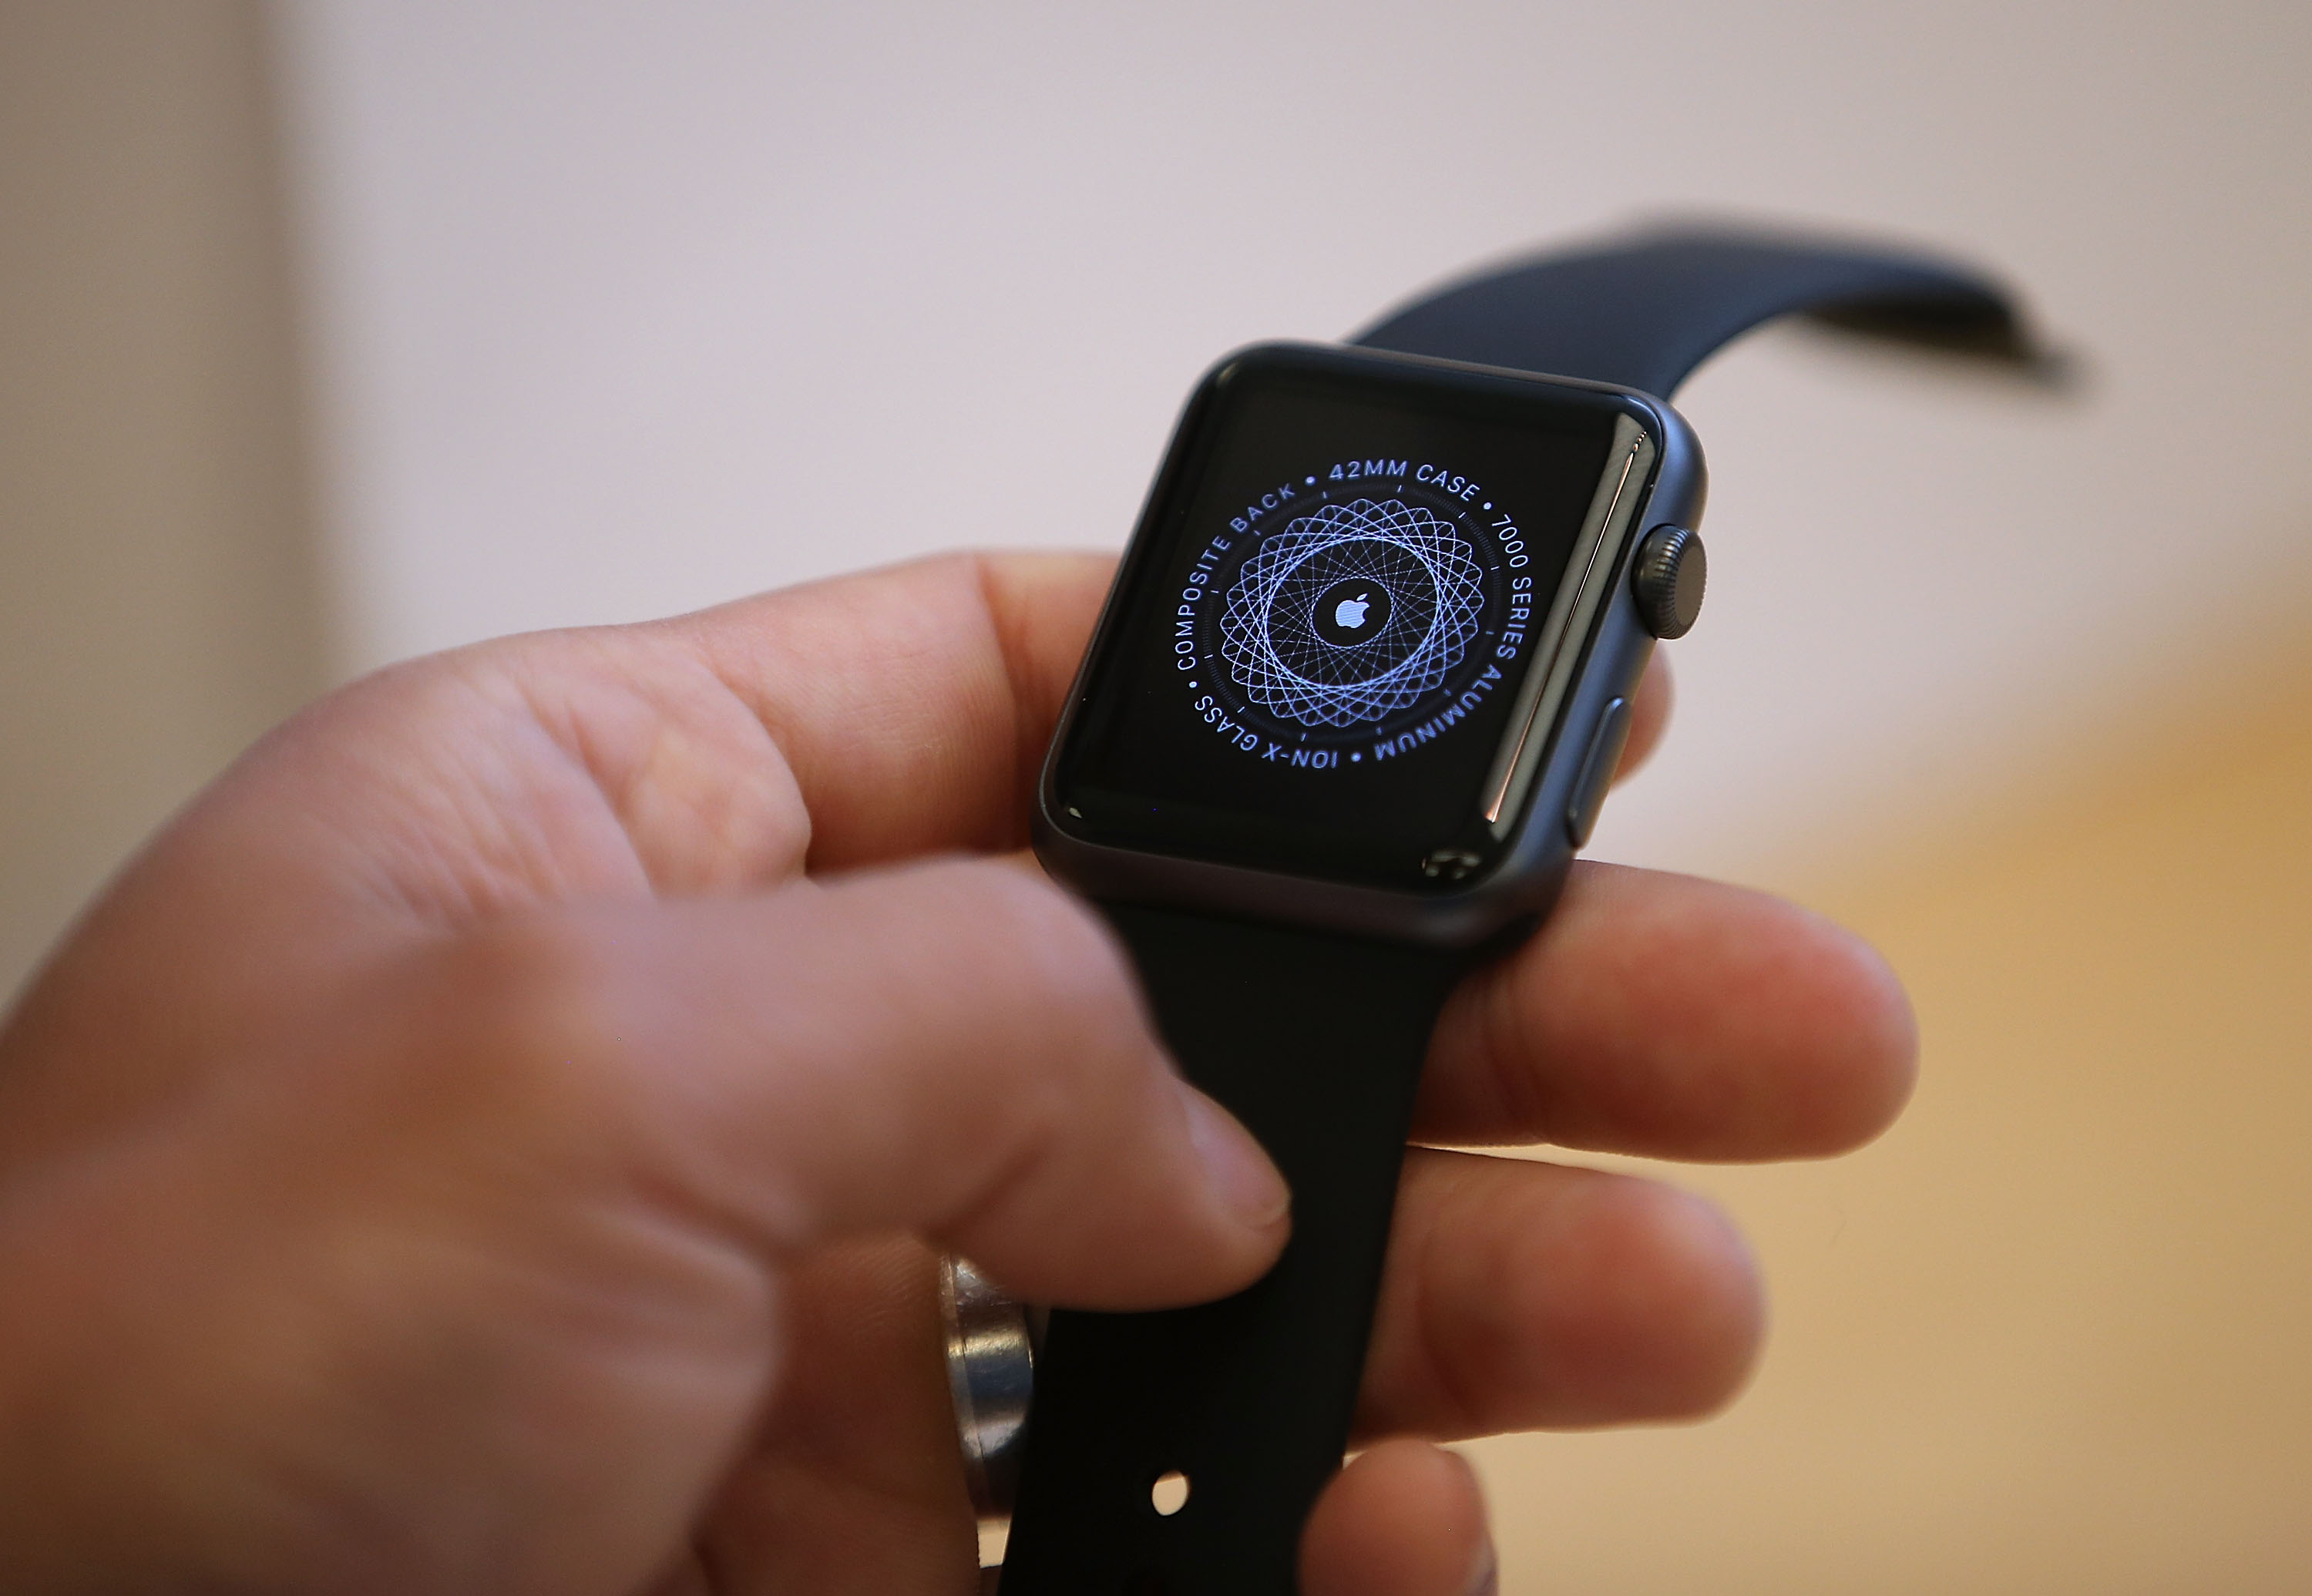 Apple Watch Lands At Target As Apple Inc. Expands ...